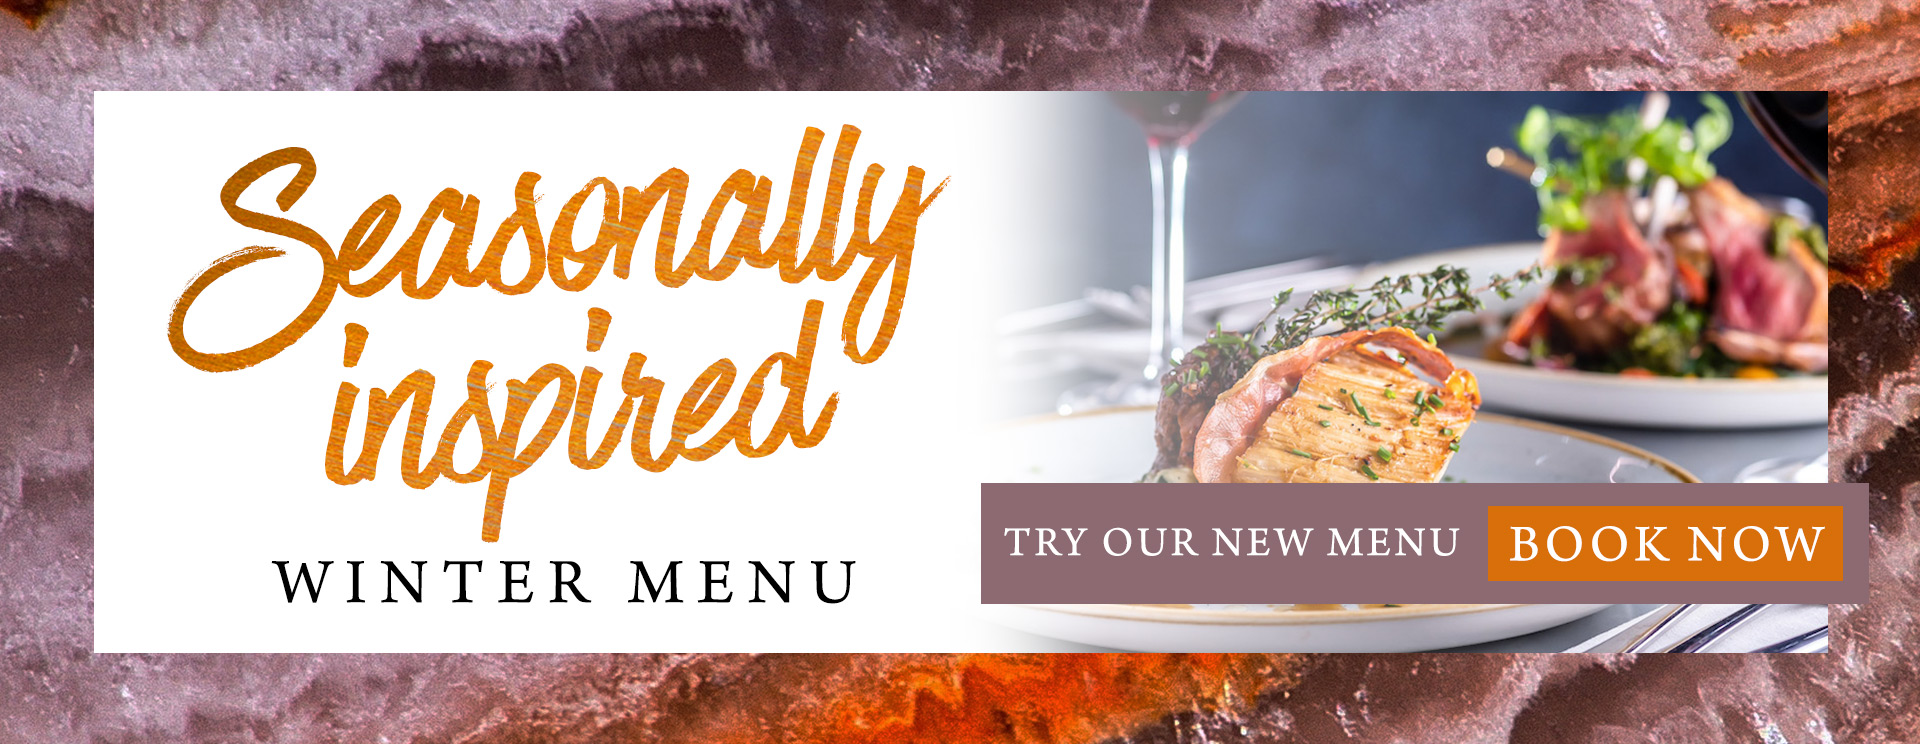 Our new winter menu at The Horse & Groom